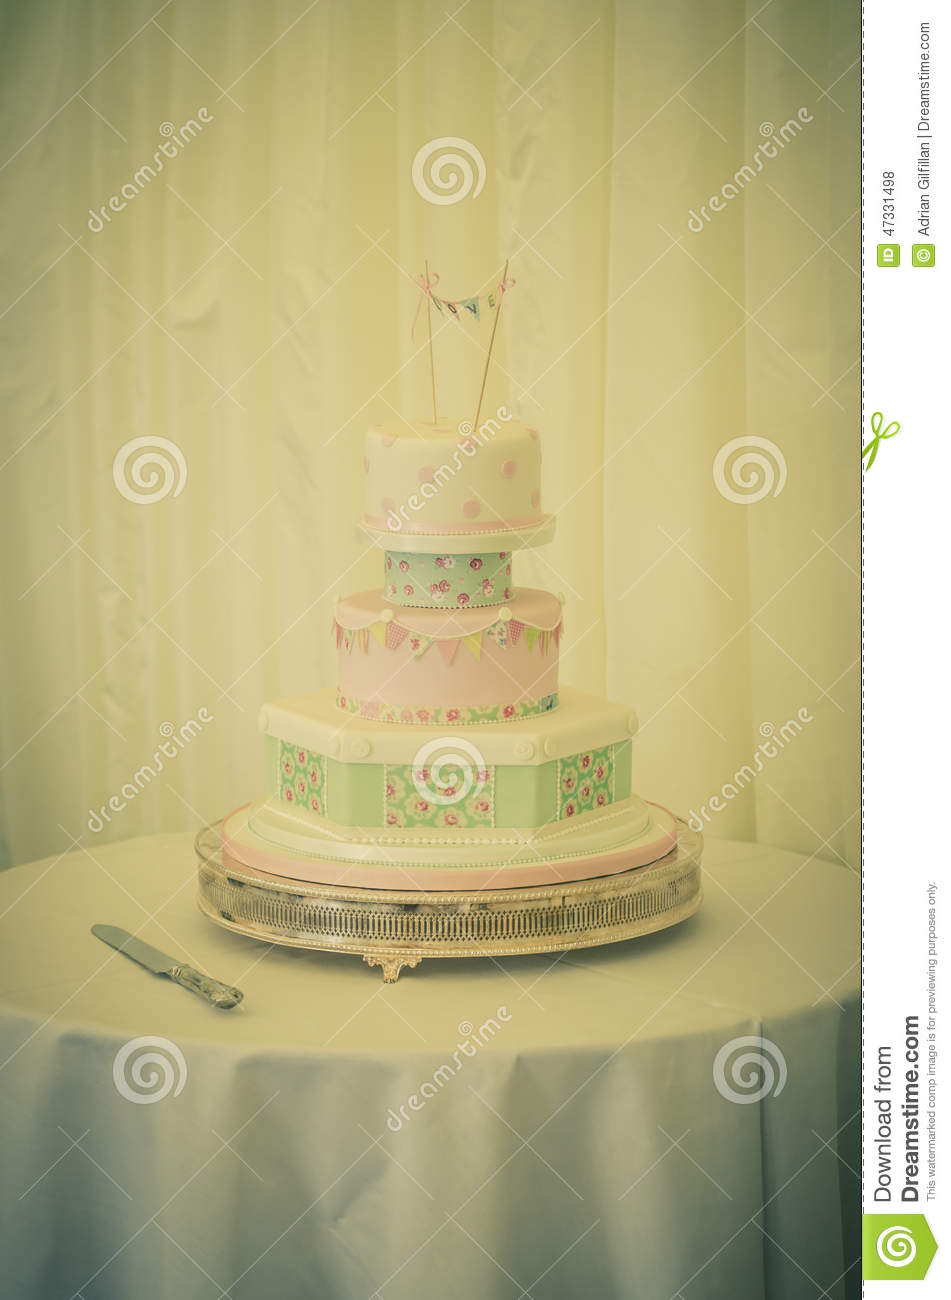 Vintage wedding cake stock photo. Image of reception - 47331498